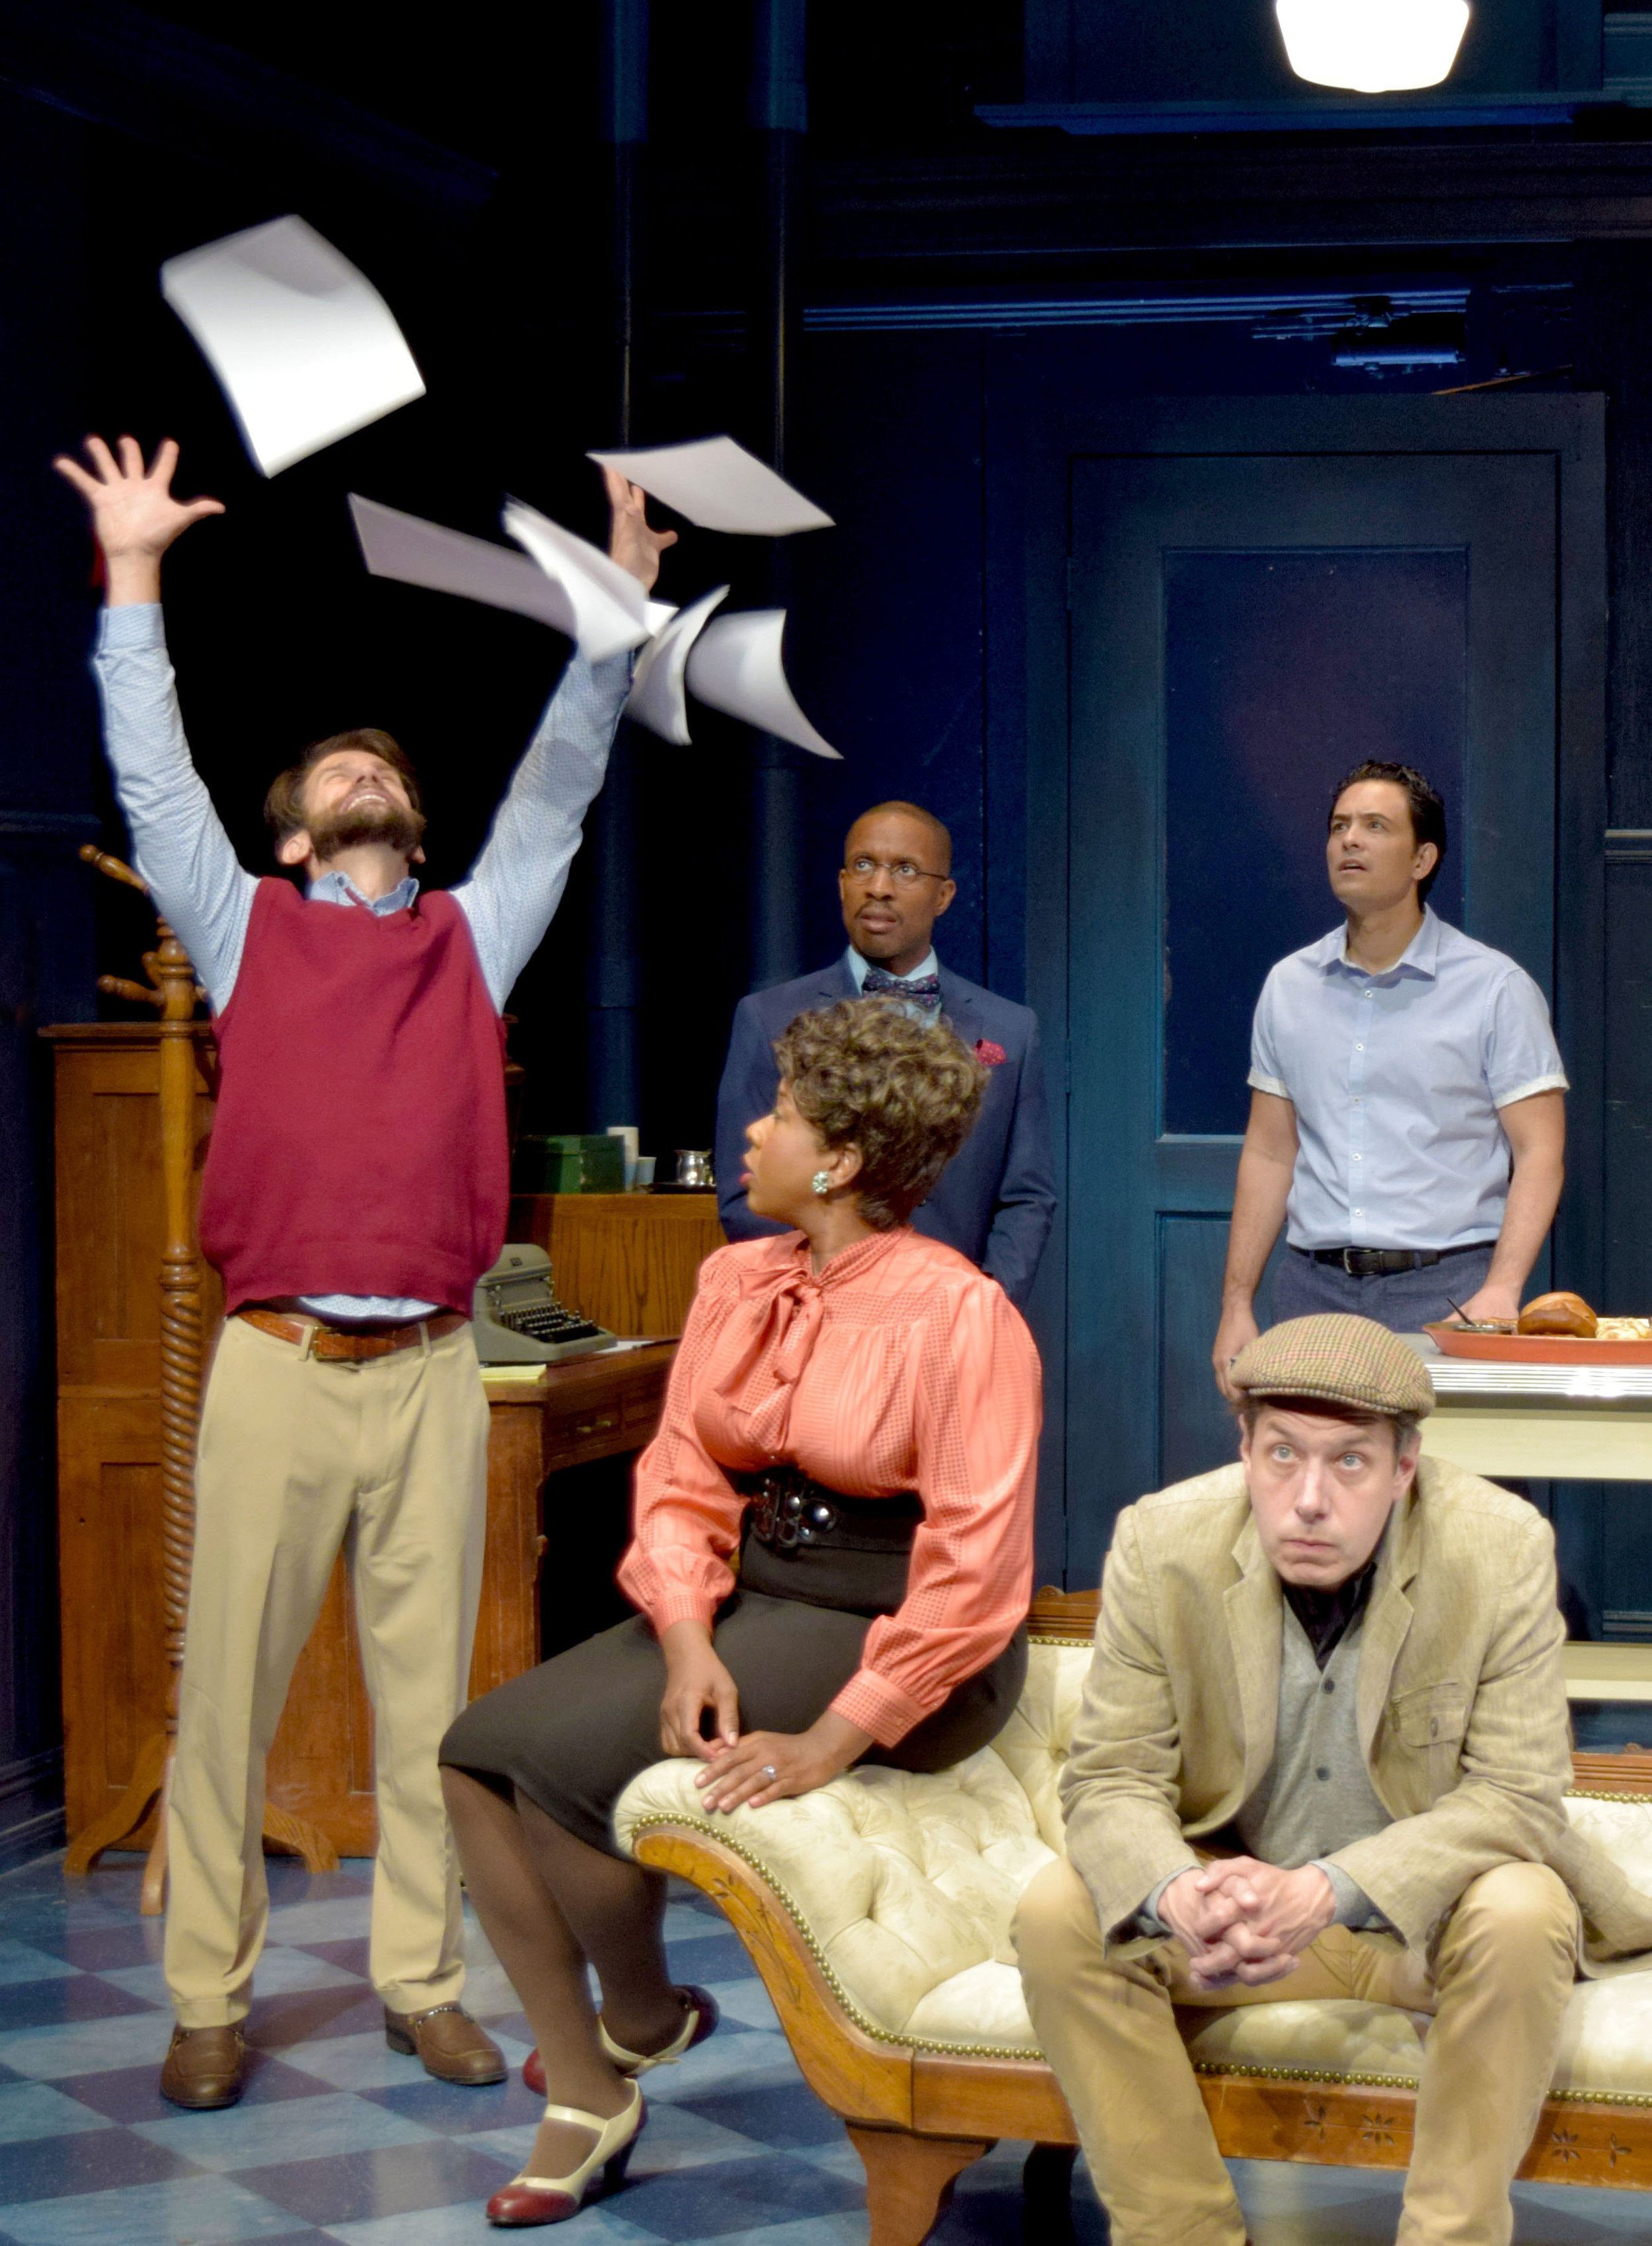 Ira (Jeff Campanella), Kenny (Cornelius Jones, Jr.), Carol (LaNisa Renee Frederick), and Lucas (Jason Grasl), Brian (John Ross Bowie) in Laughter on the 23rd Floor at the Garry Marshall Theatre.